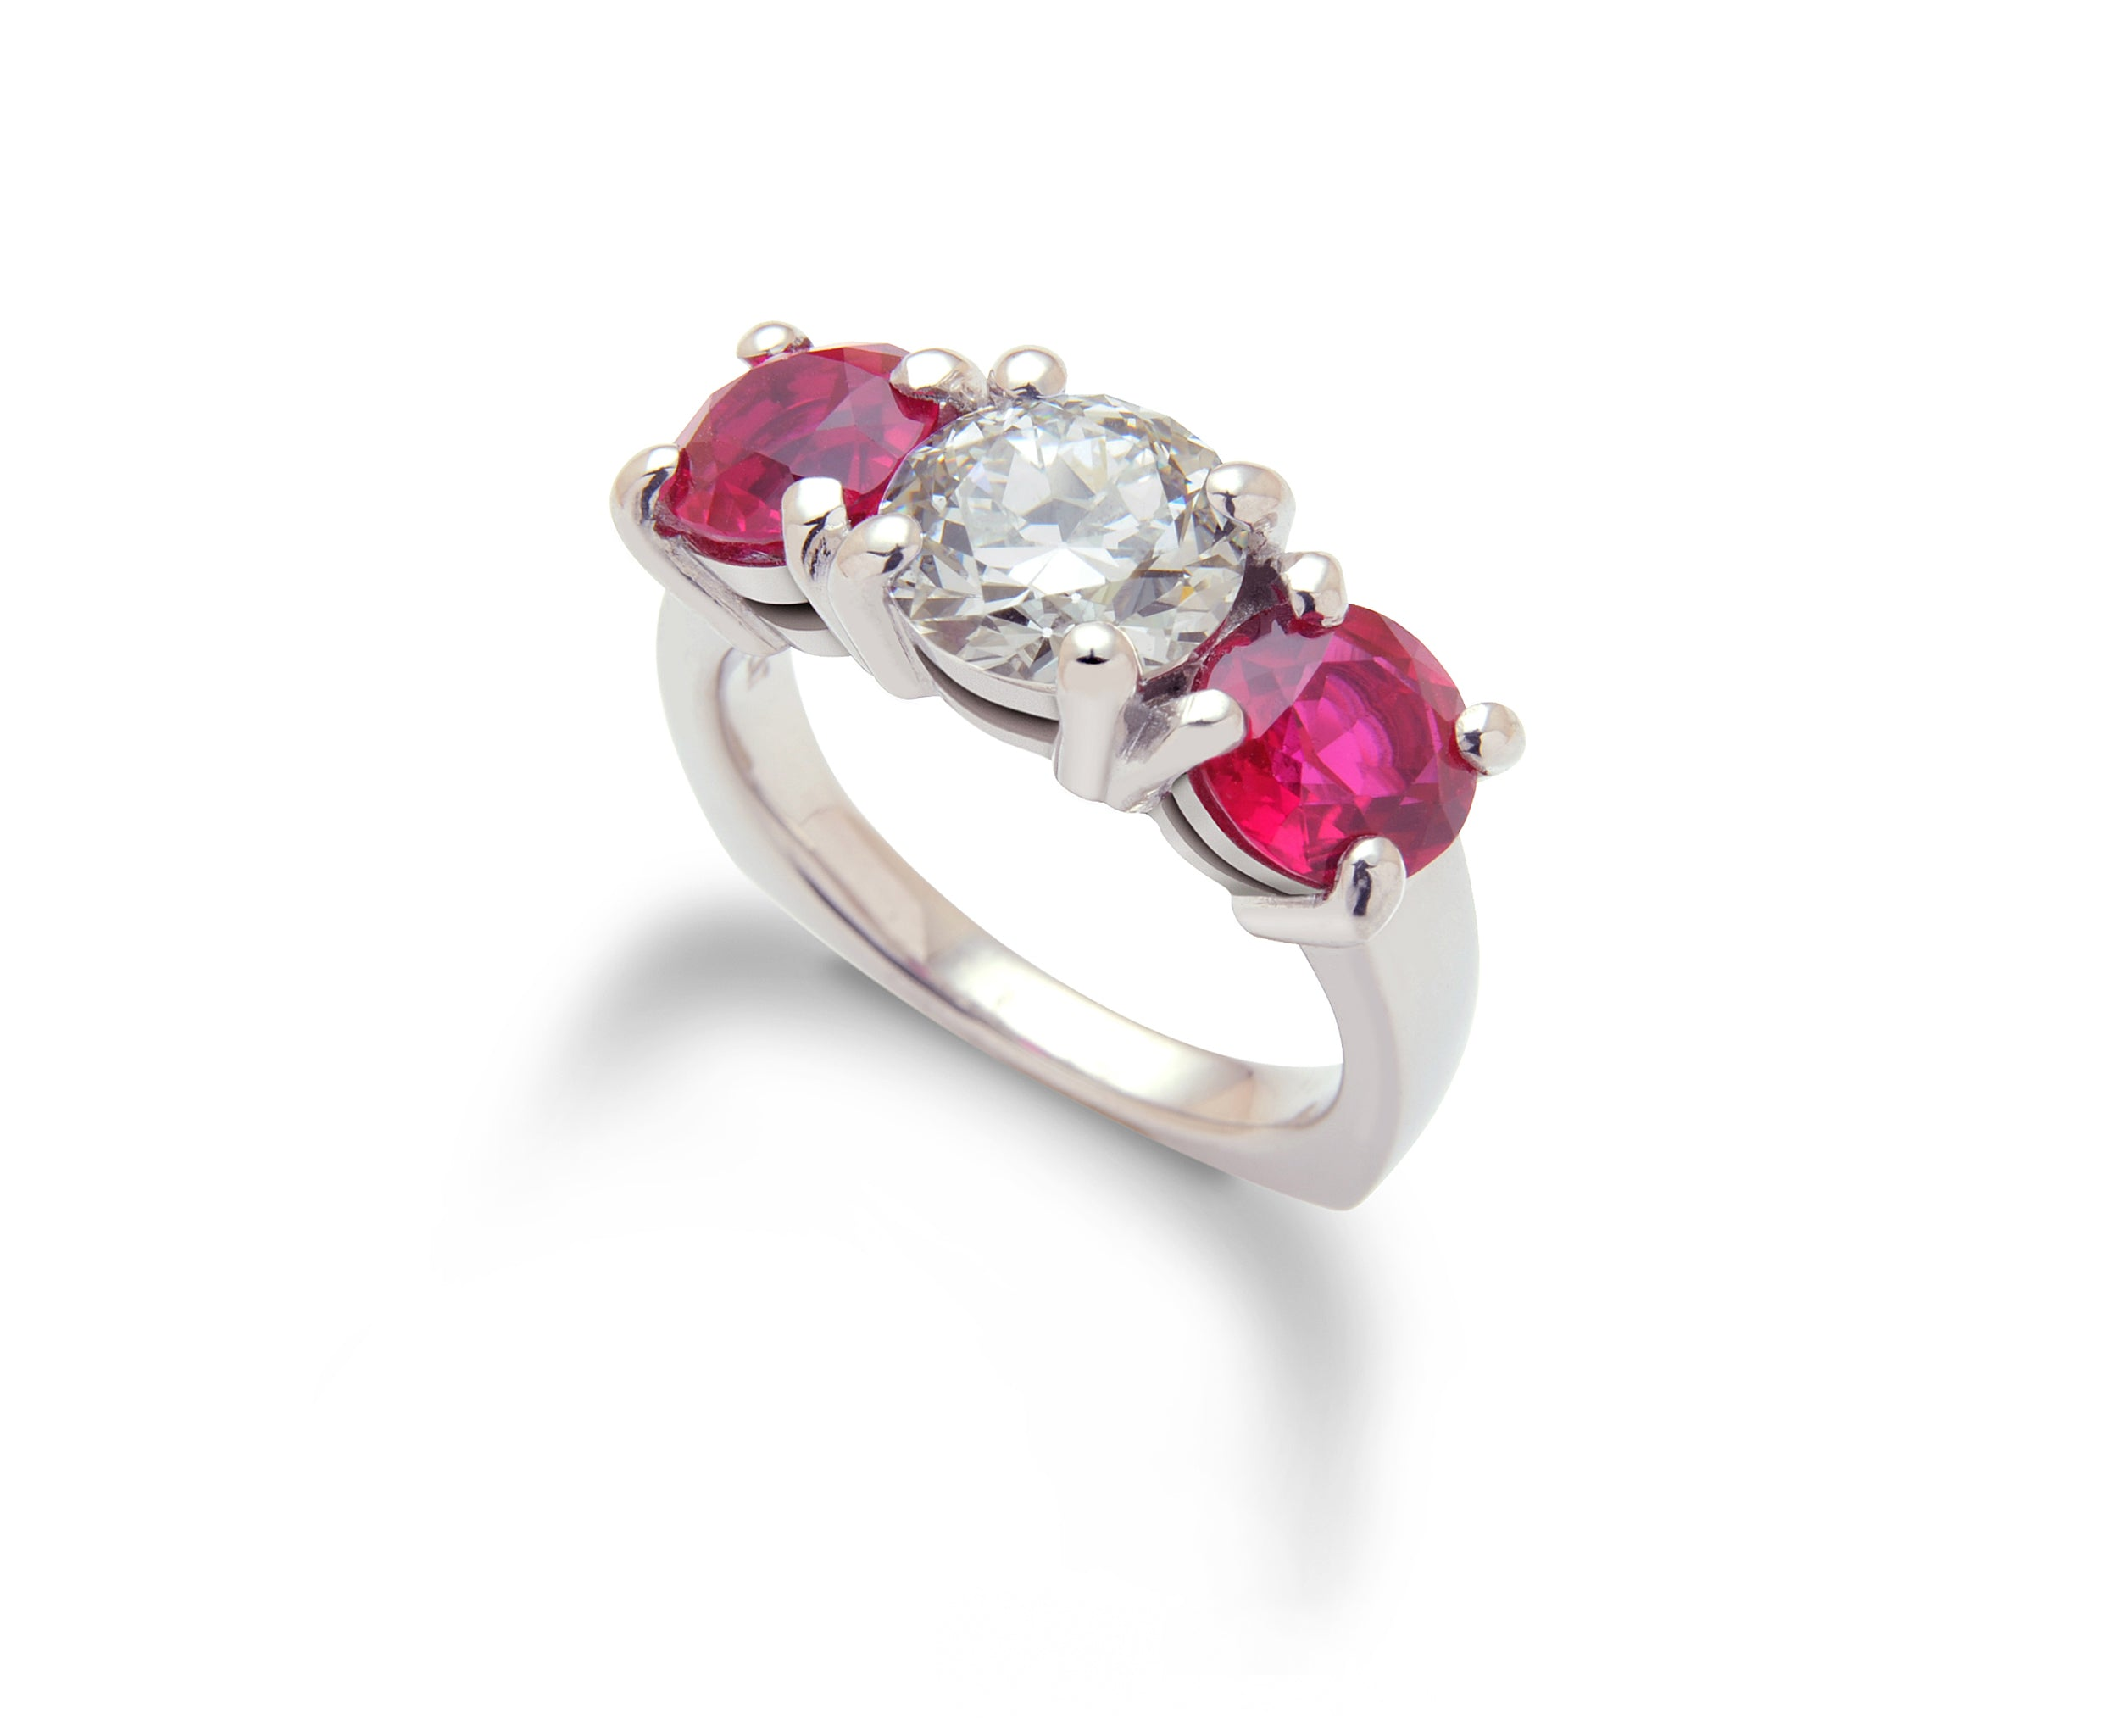 Two carat Diamond ring with large Rubies